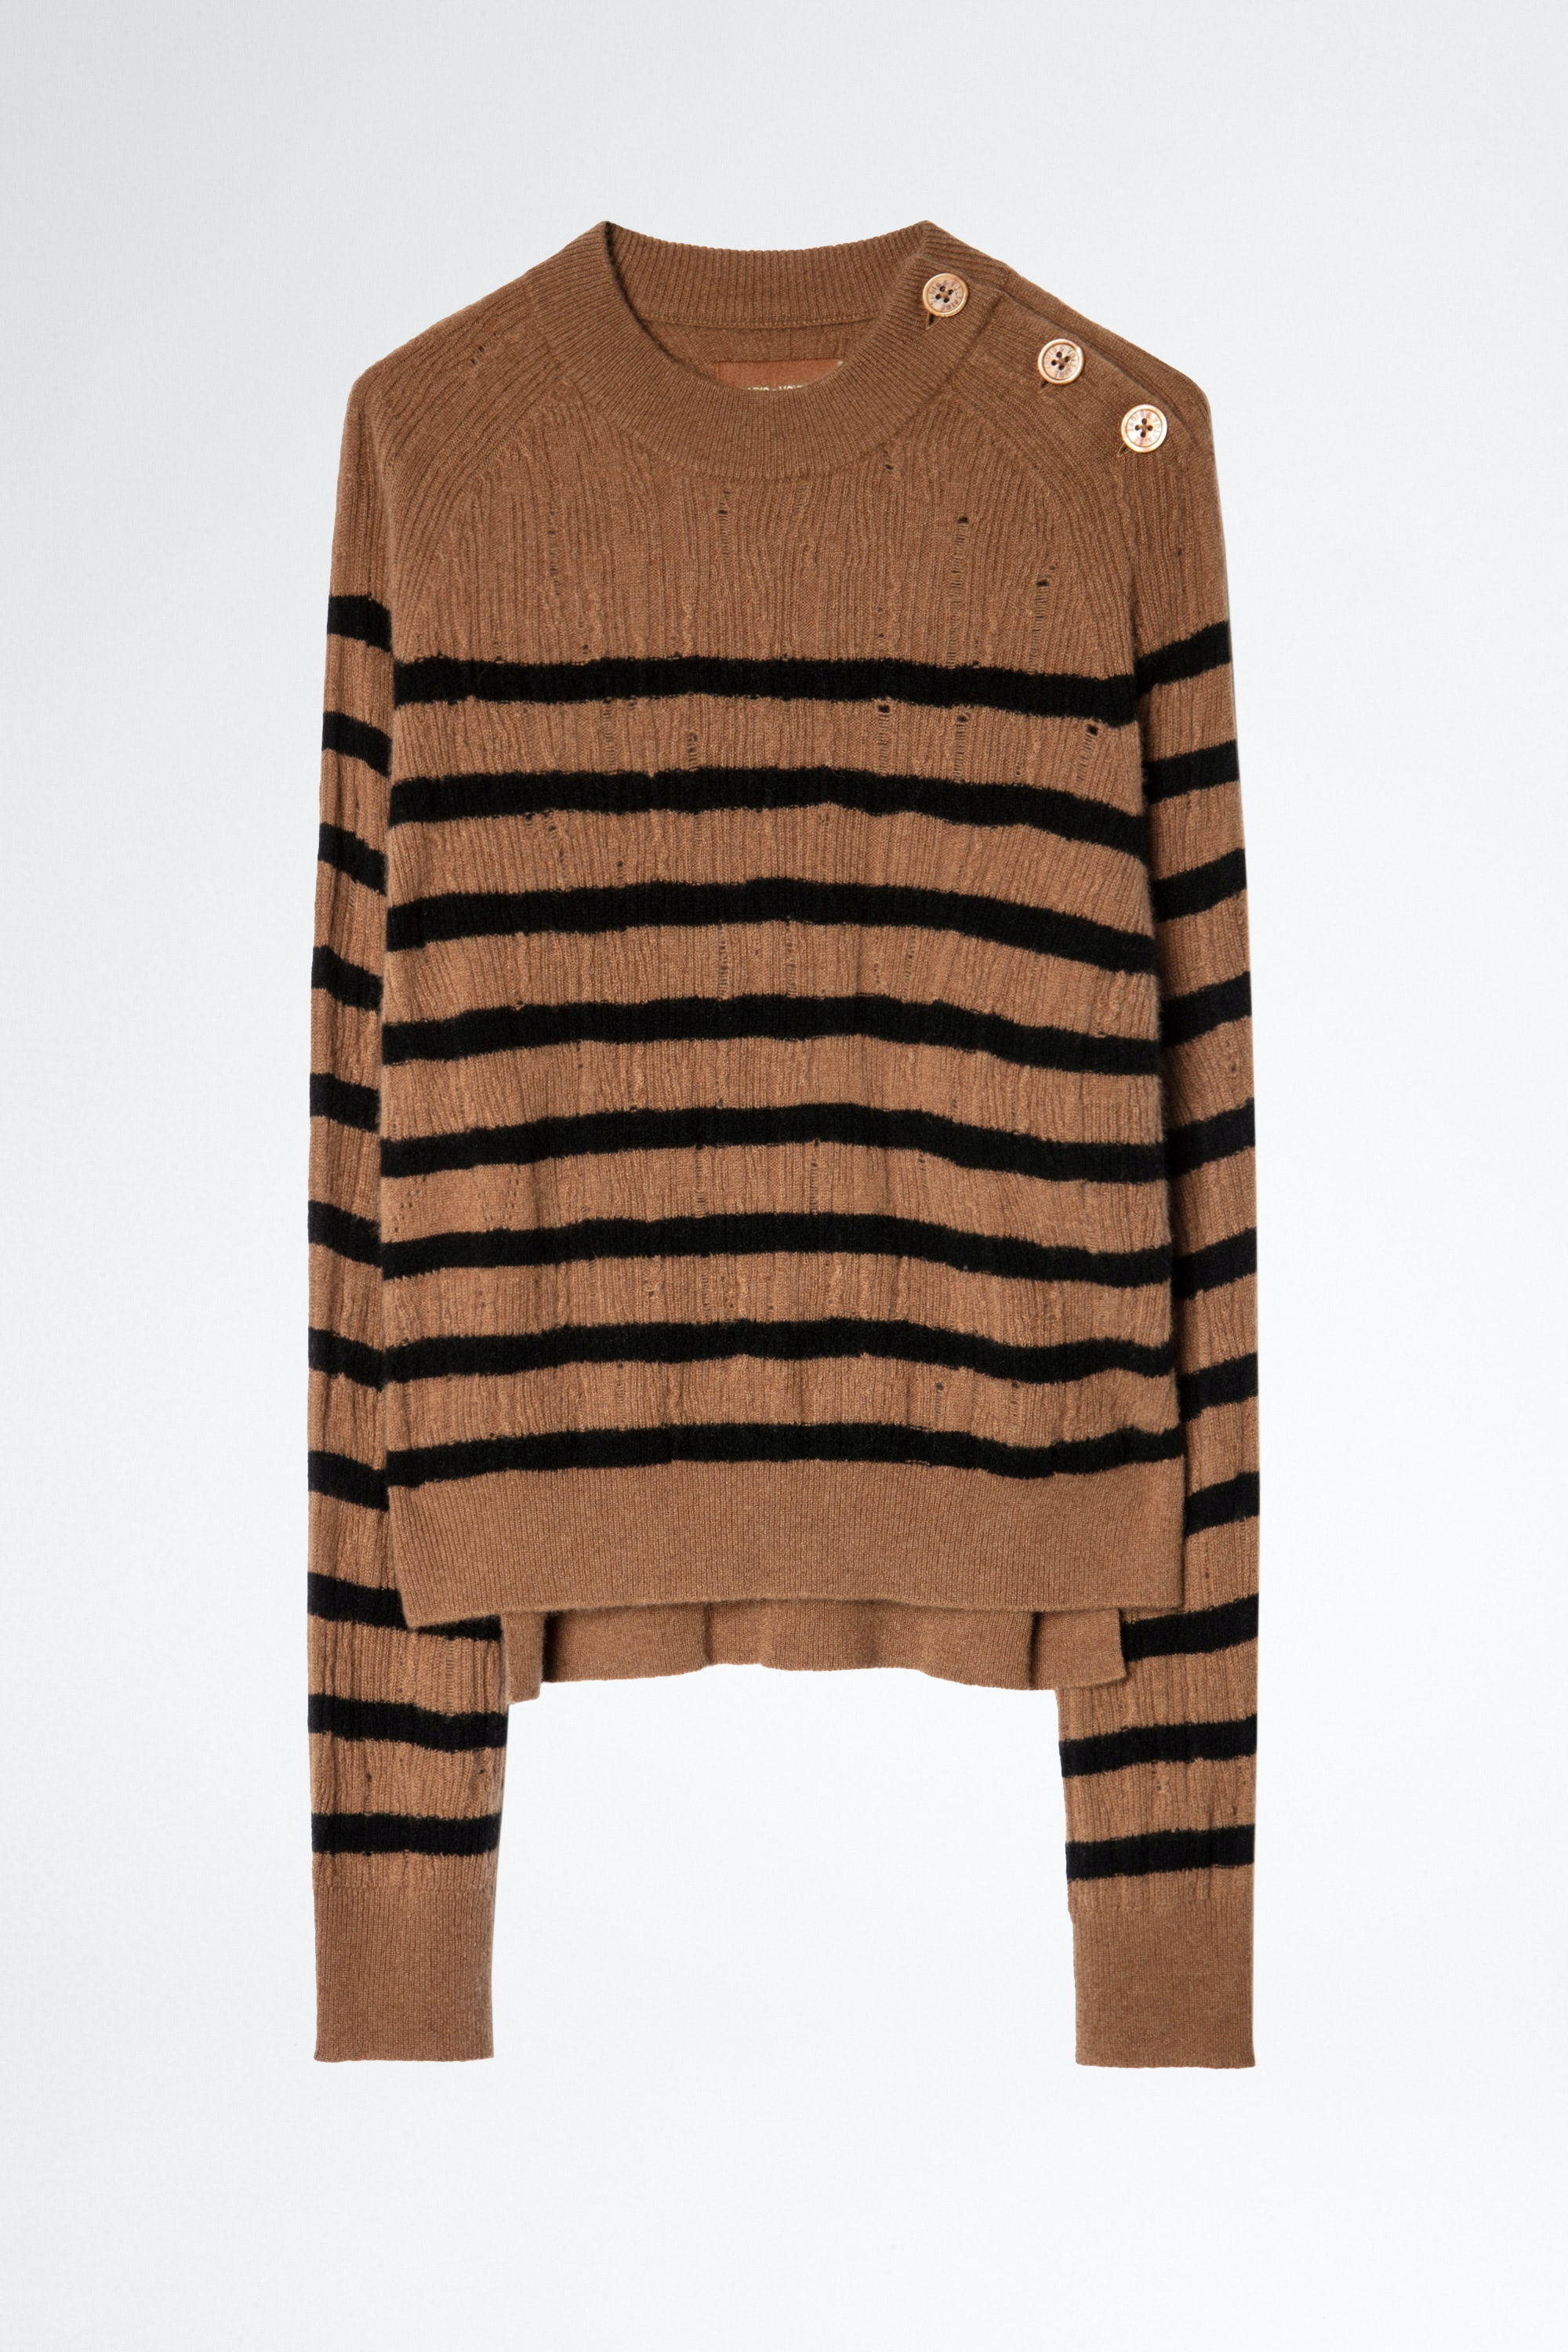 Lili Stripes Destroy Cachemire Sweater